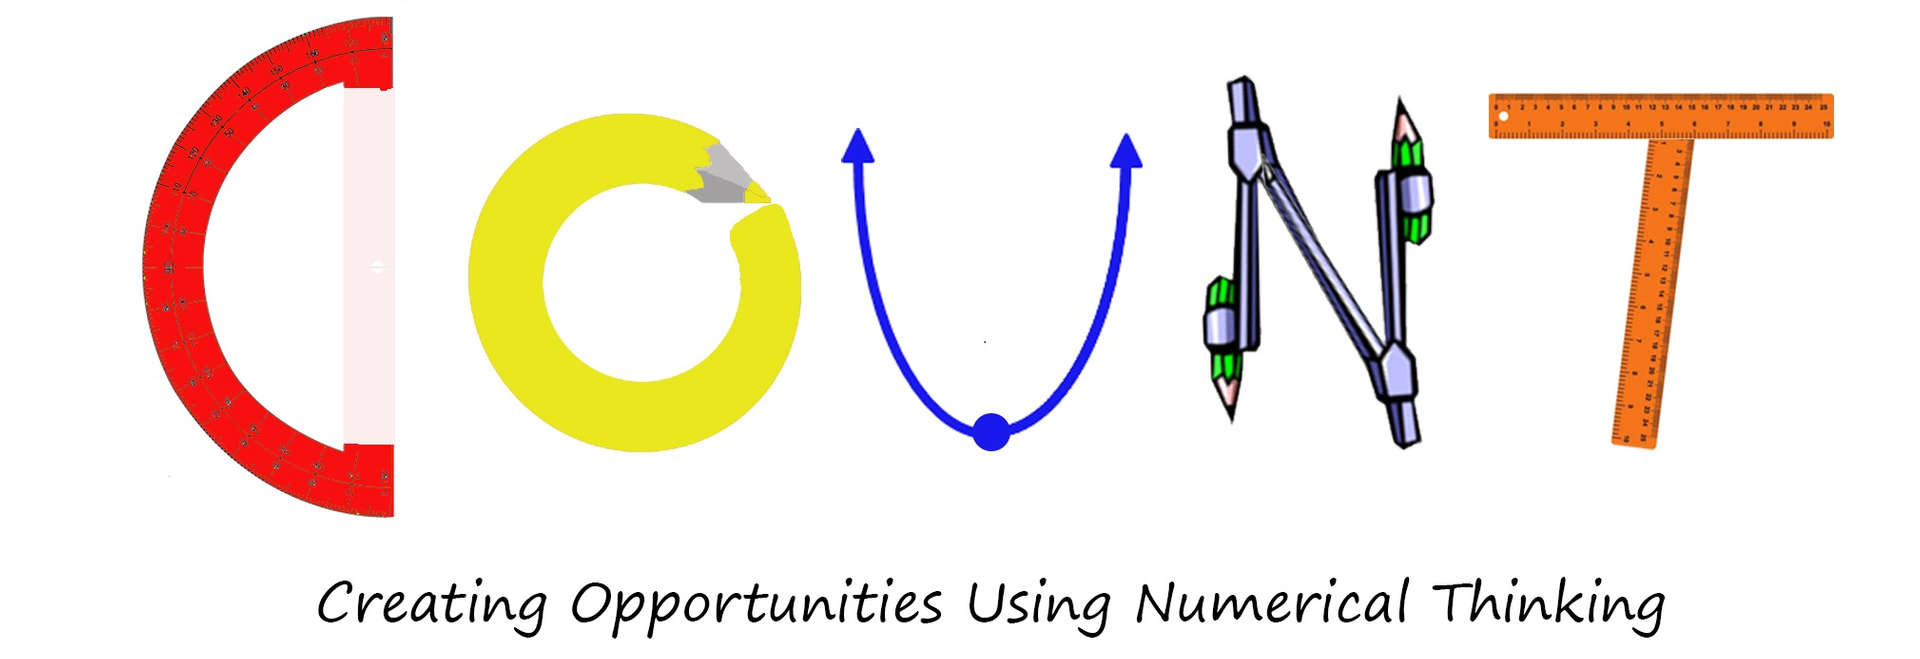 COUNT- Creating Opportunities Using Numerical Thinking banner